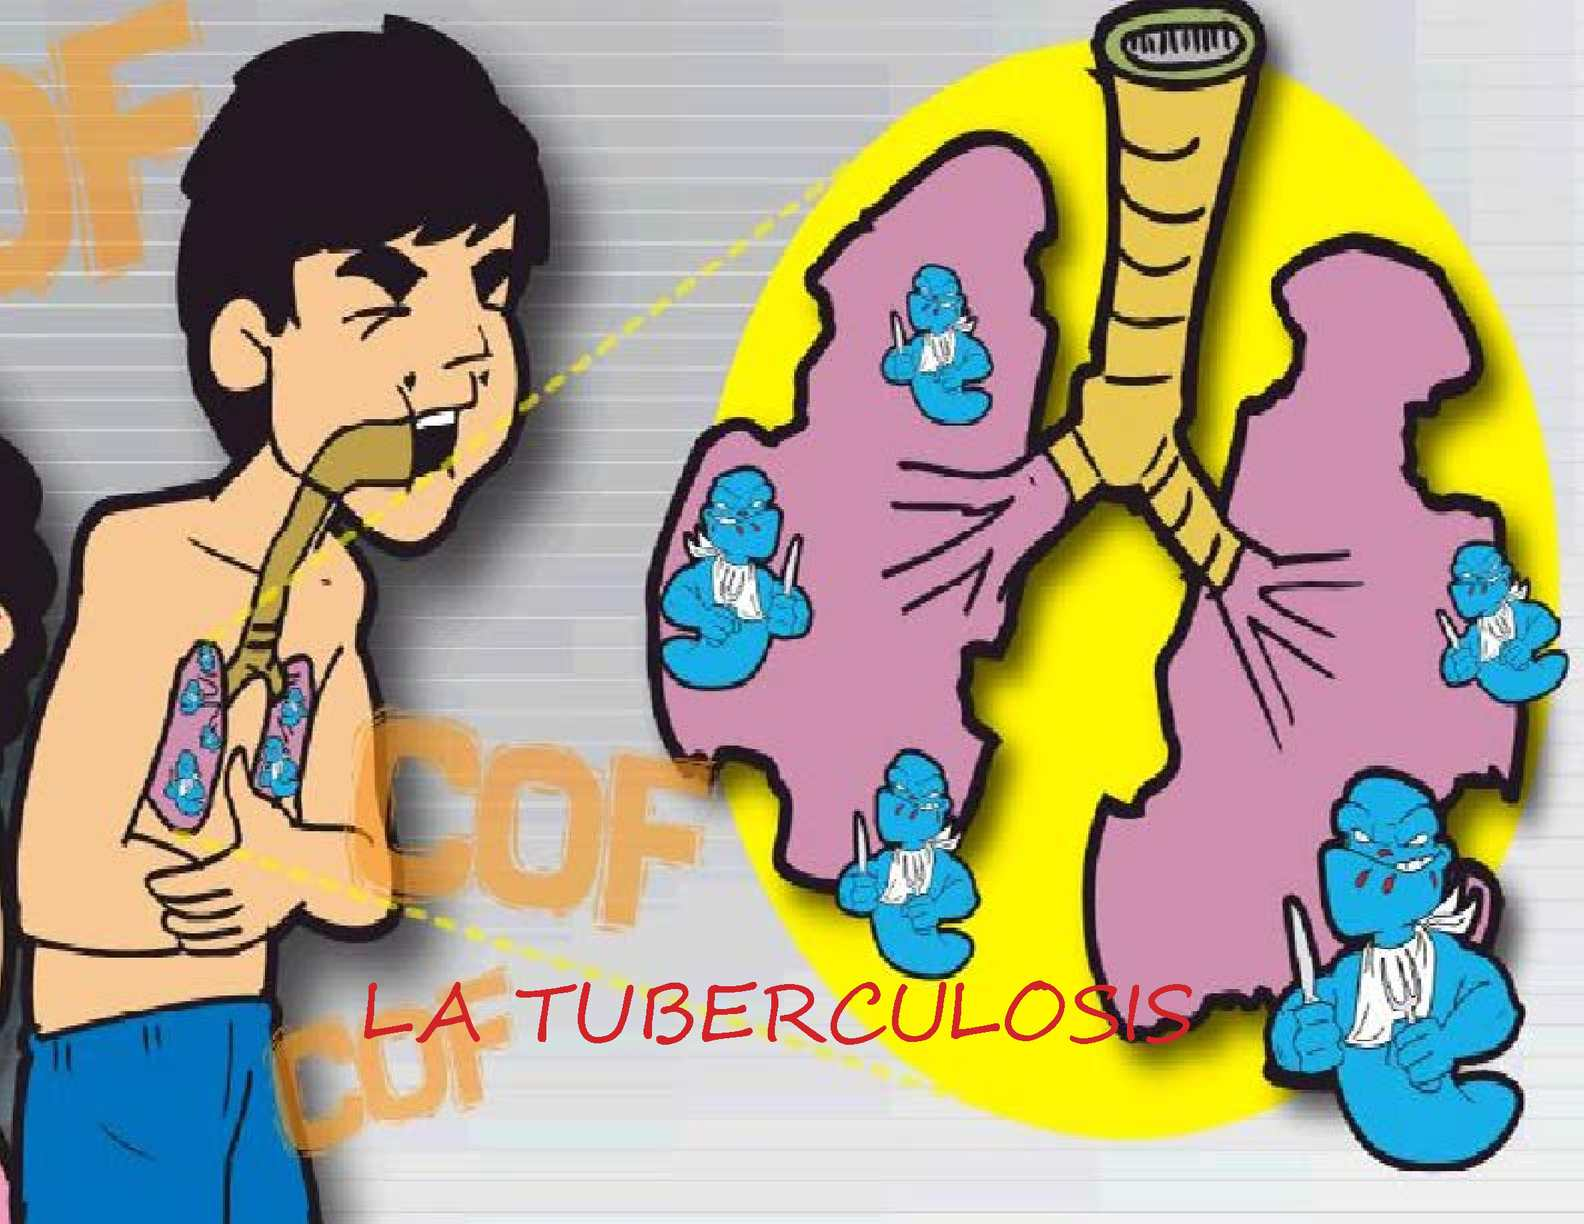 a history of medical cure in tuberculosis Is tb treatable tb can be cured in almost all cases by taking the medications as prescribed without interruption inform the doctor of your past medical history and about any medications you are taking take your medications as directed.